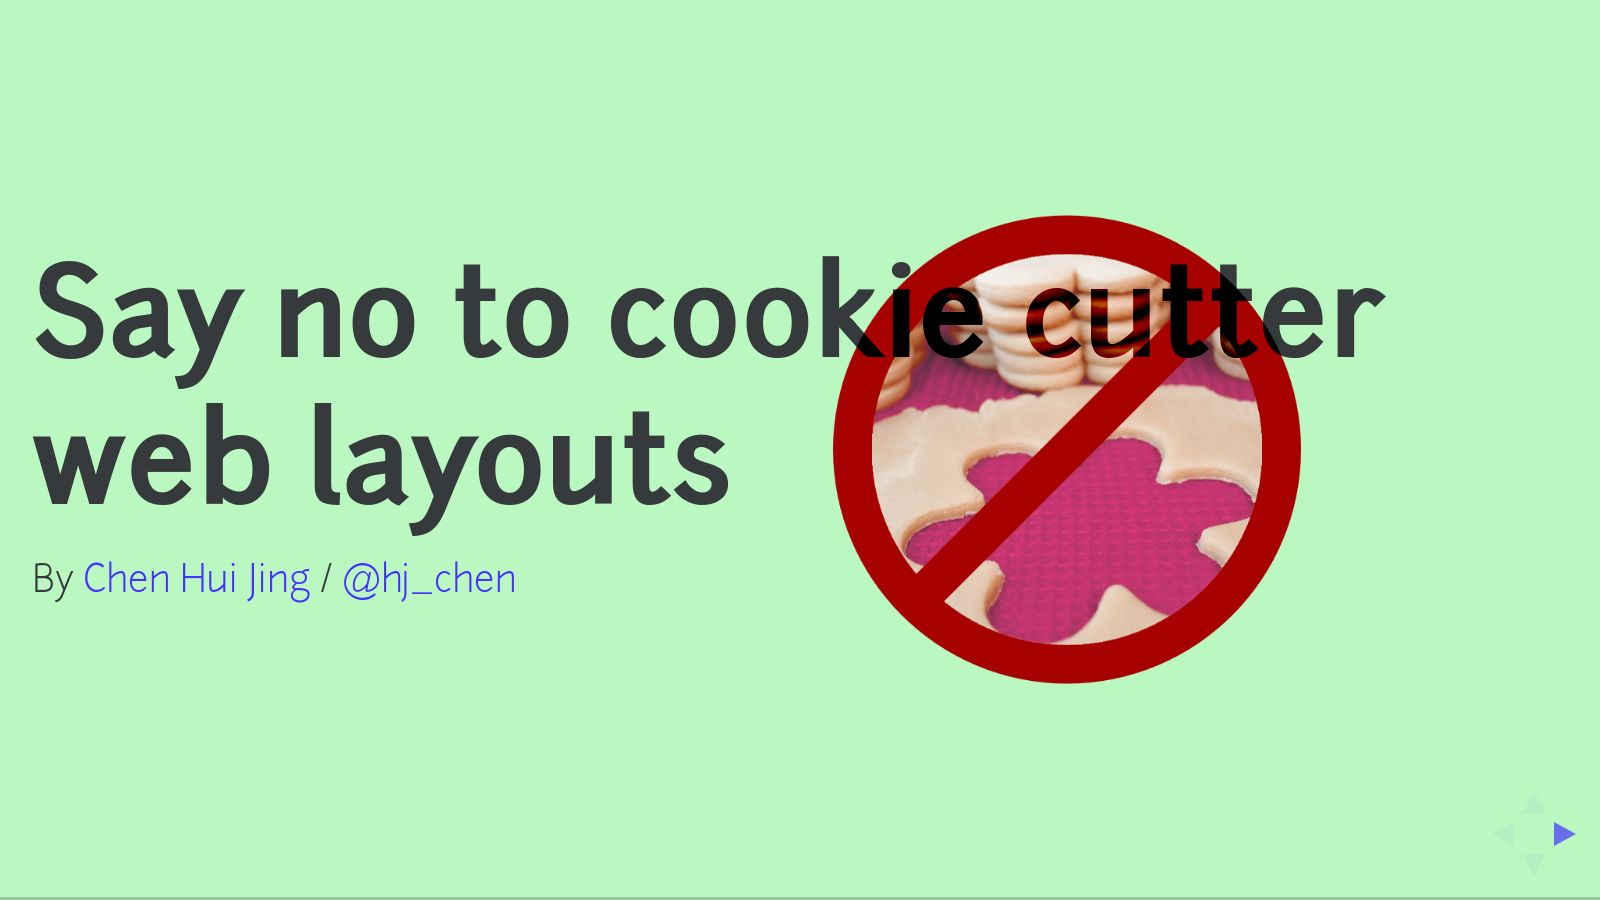 Say no to cookie cutter web layouts